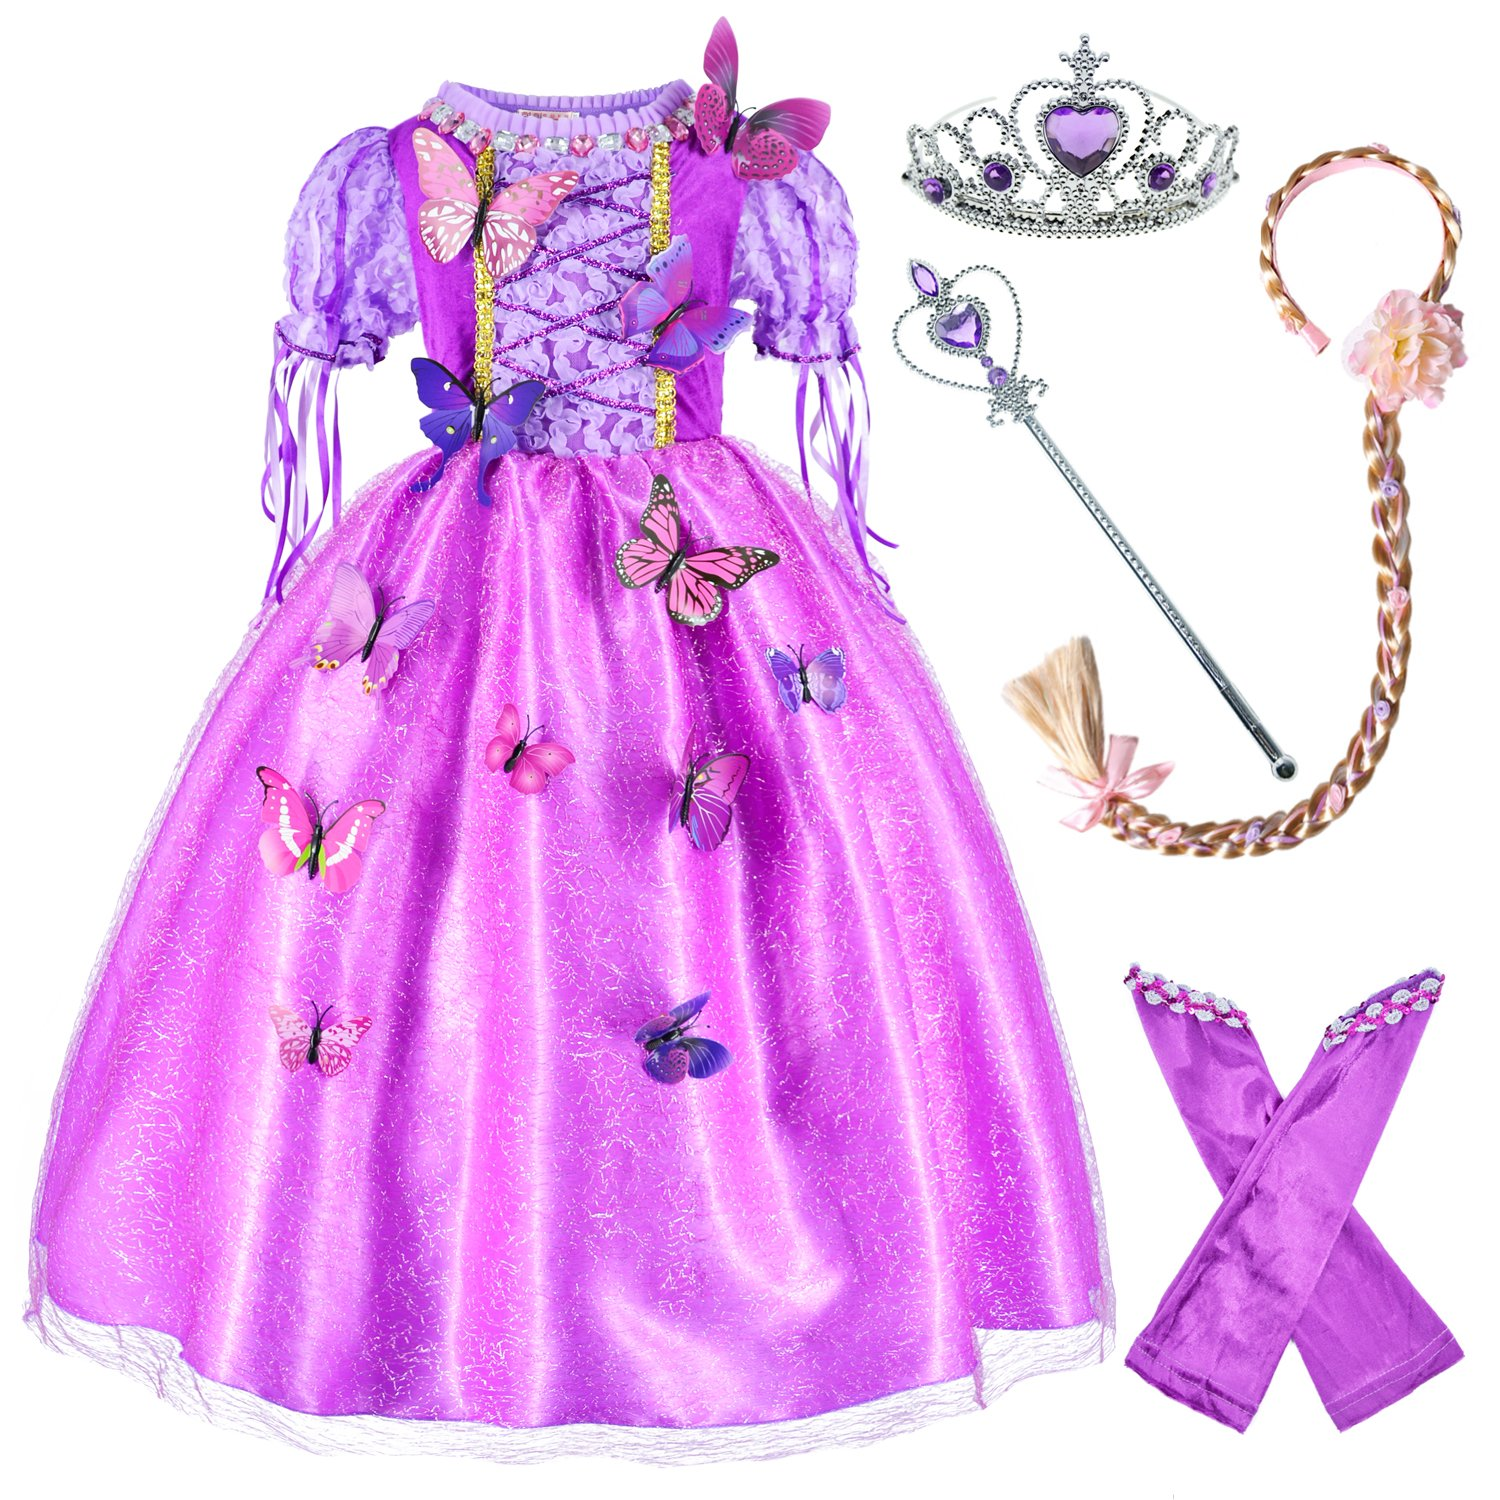 Long Hair Rapunzel Princess Costume For Girls Party Dress Up With Long Braid and Tiaras Set Age of 4-5 Years(110cm)